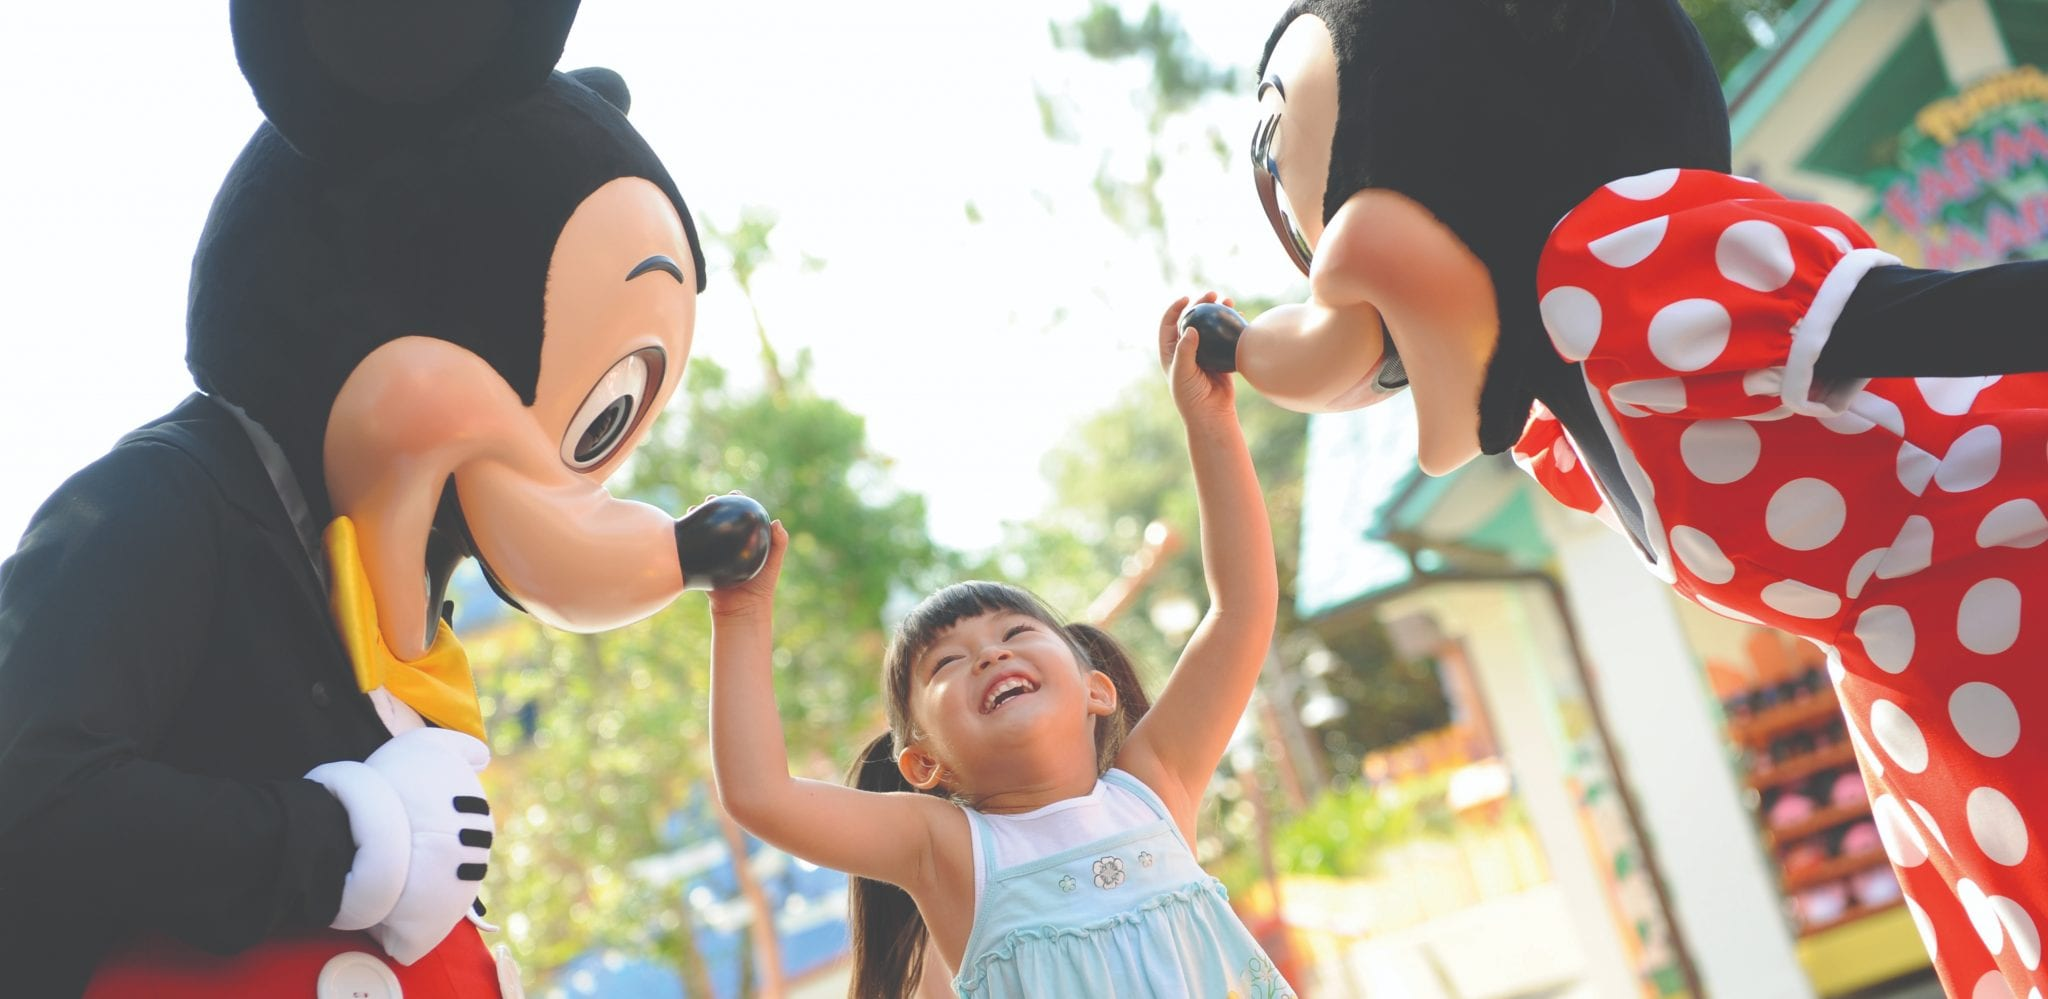 Child with Mickey and Minnie Mouse